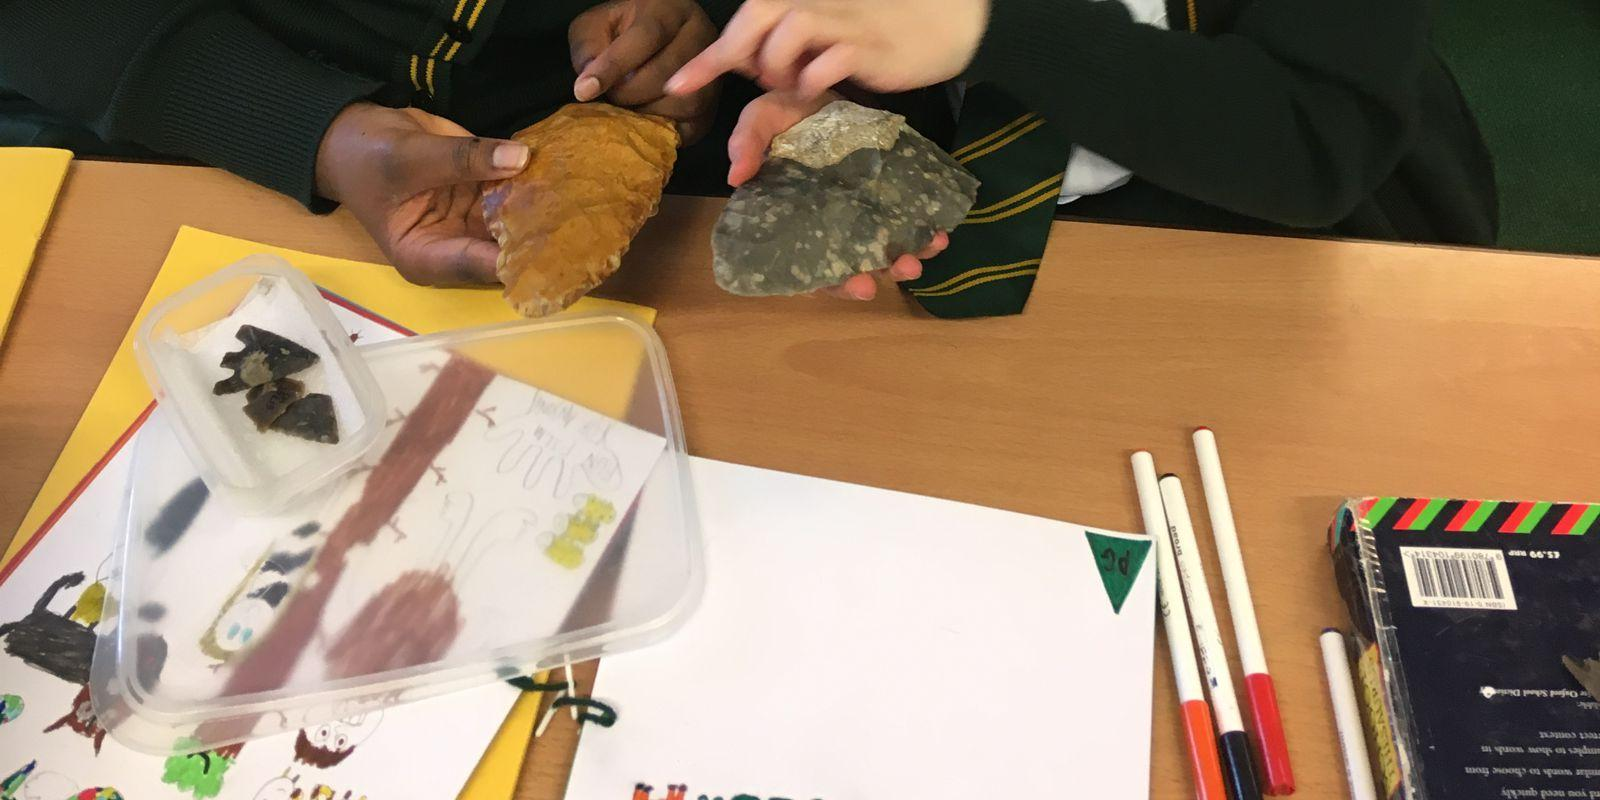 Pupils from St James' C of E Primary School studying a palaeolithic handaxe and a replica